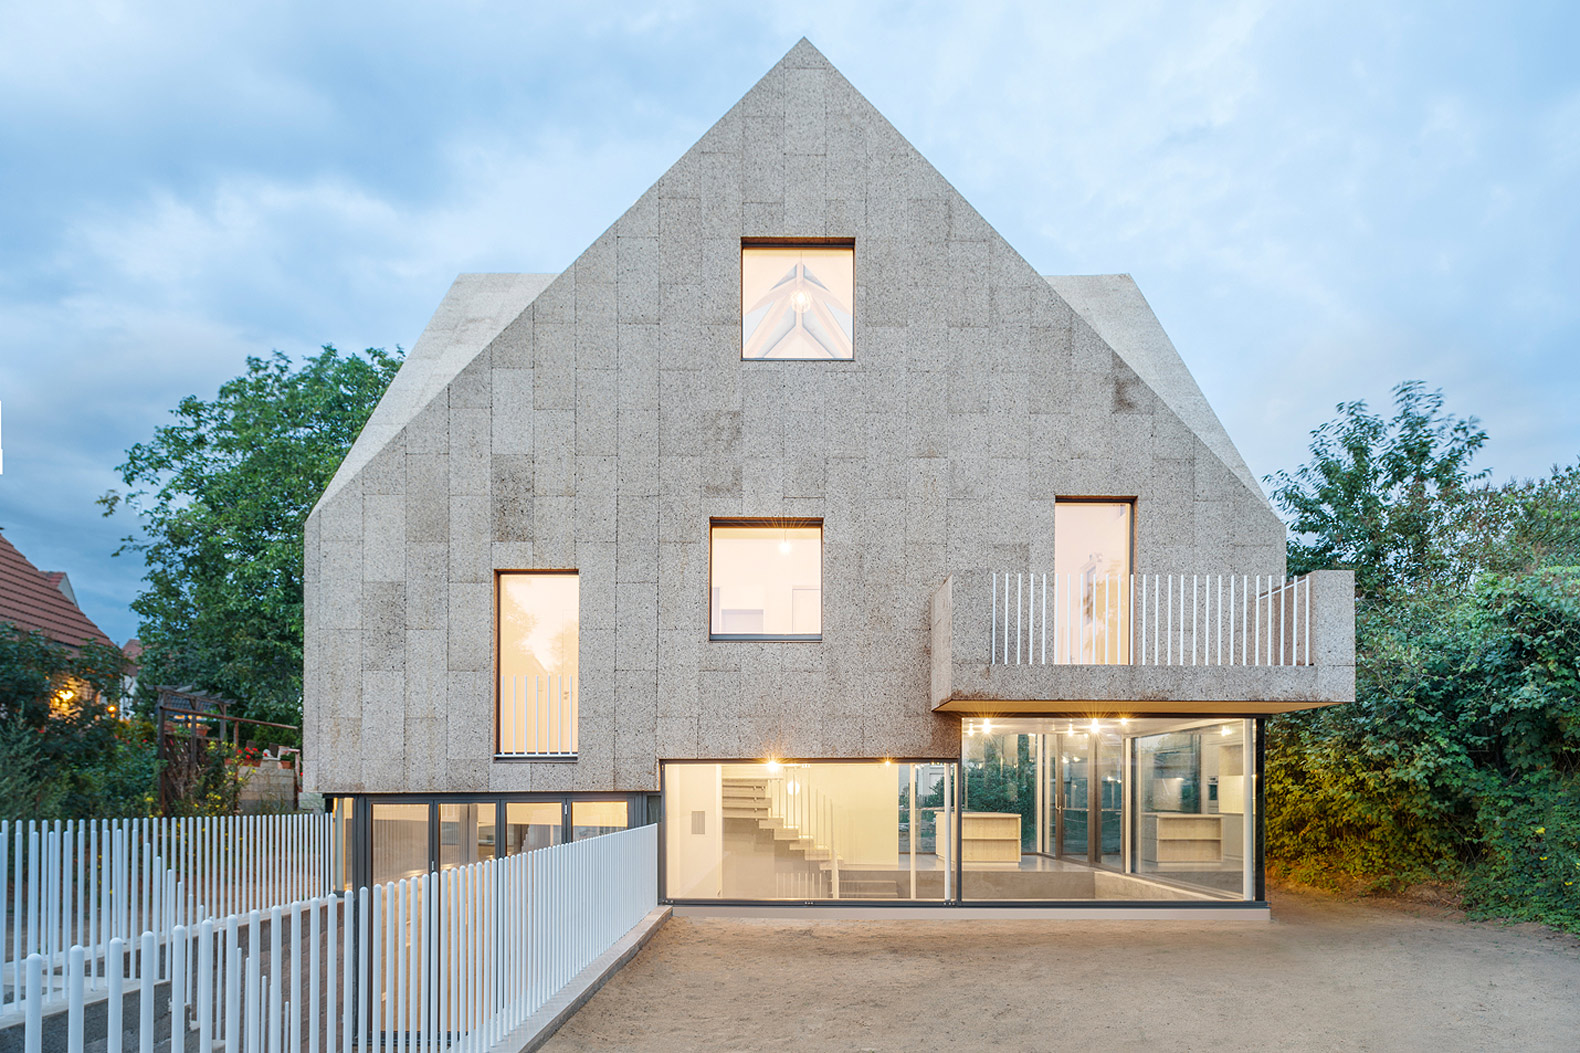 Solar-powered cork house pursues healthy, sustainable living